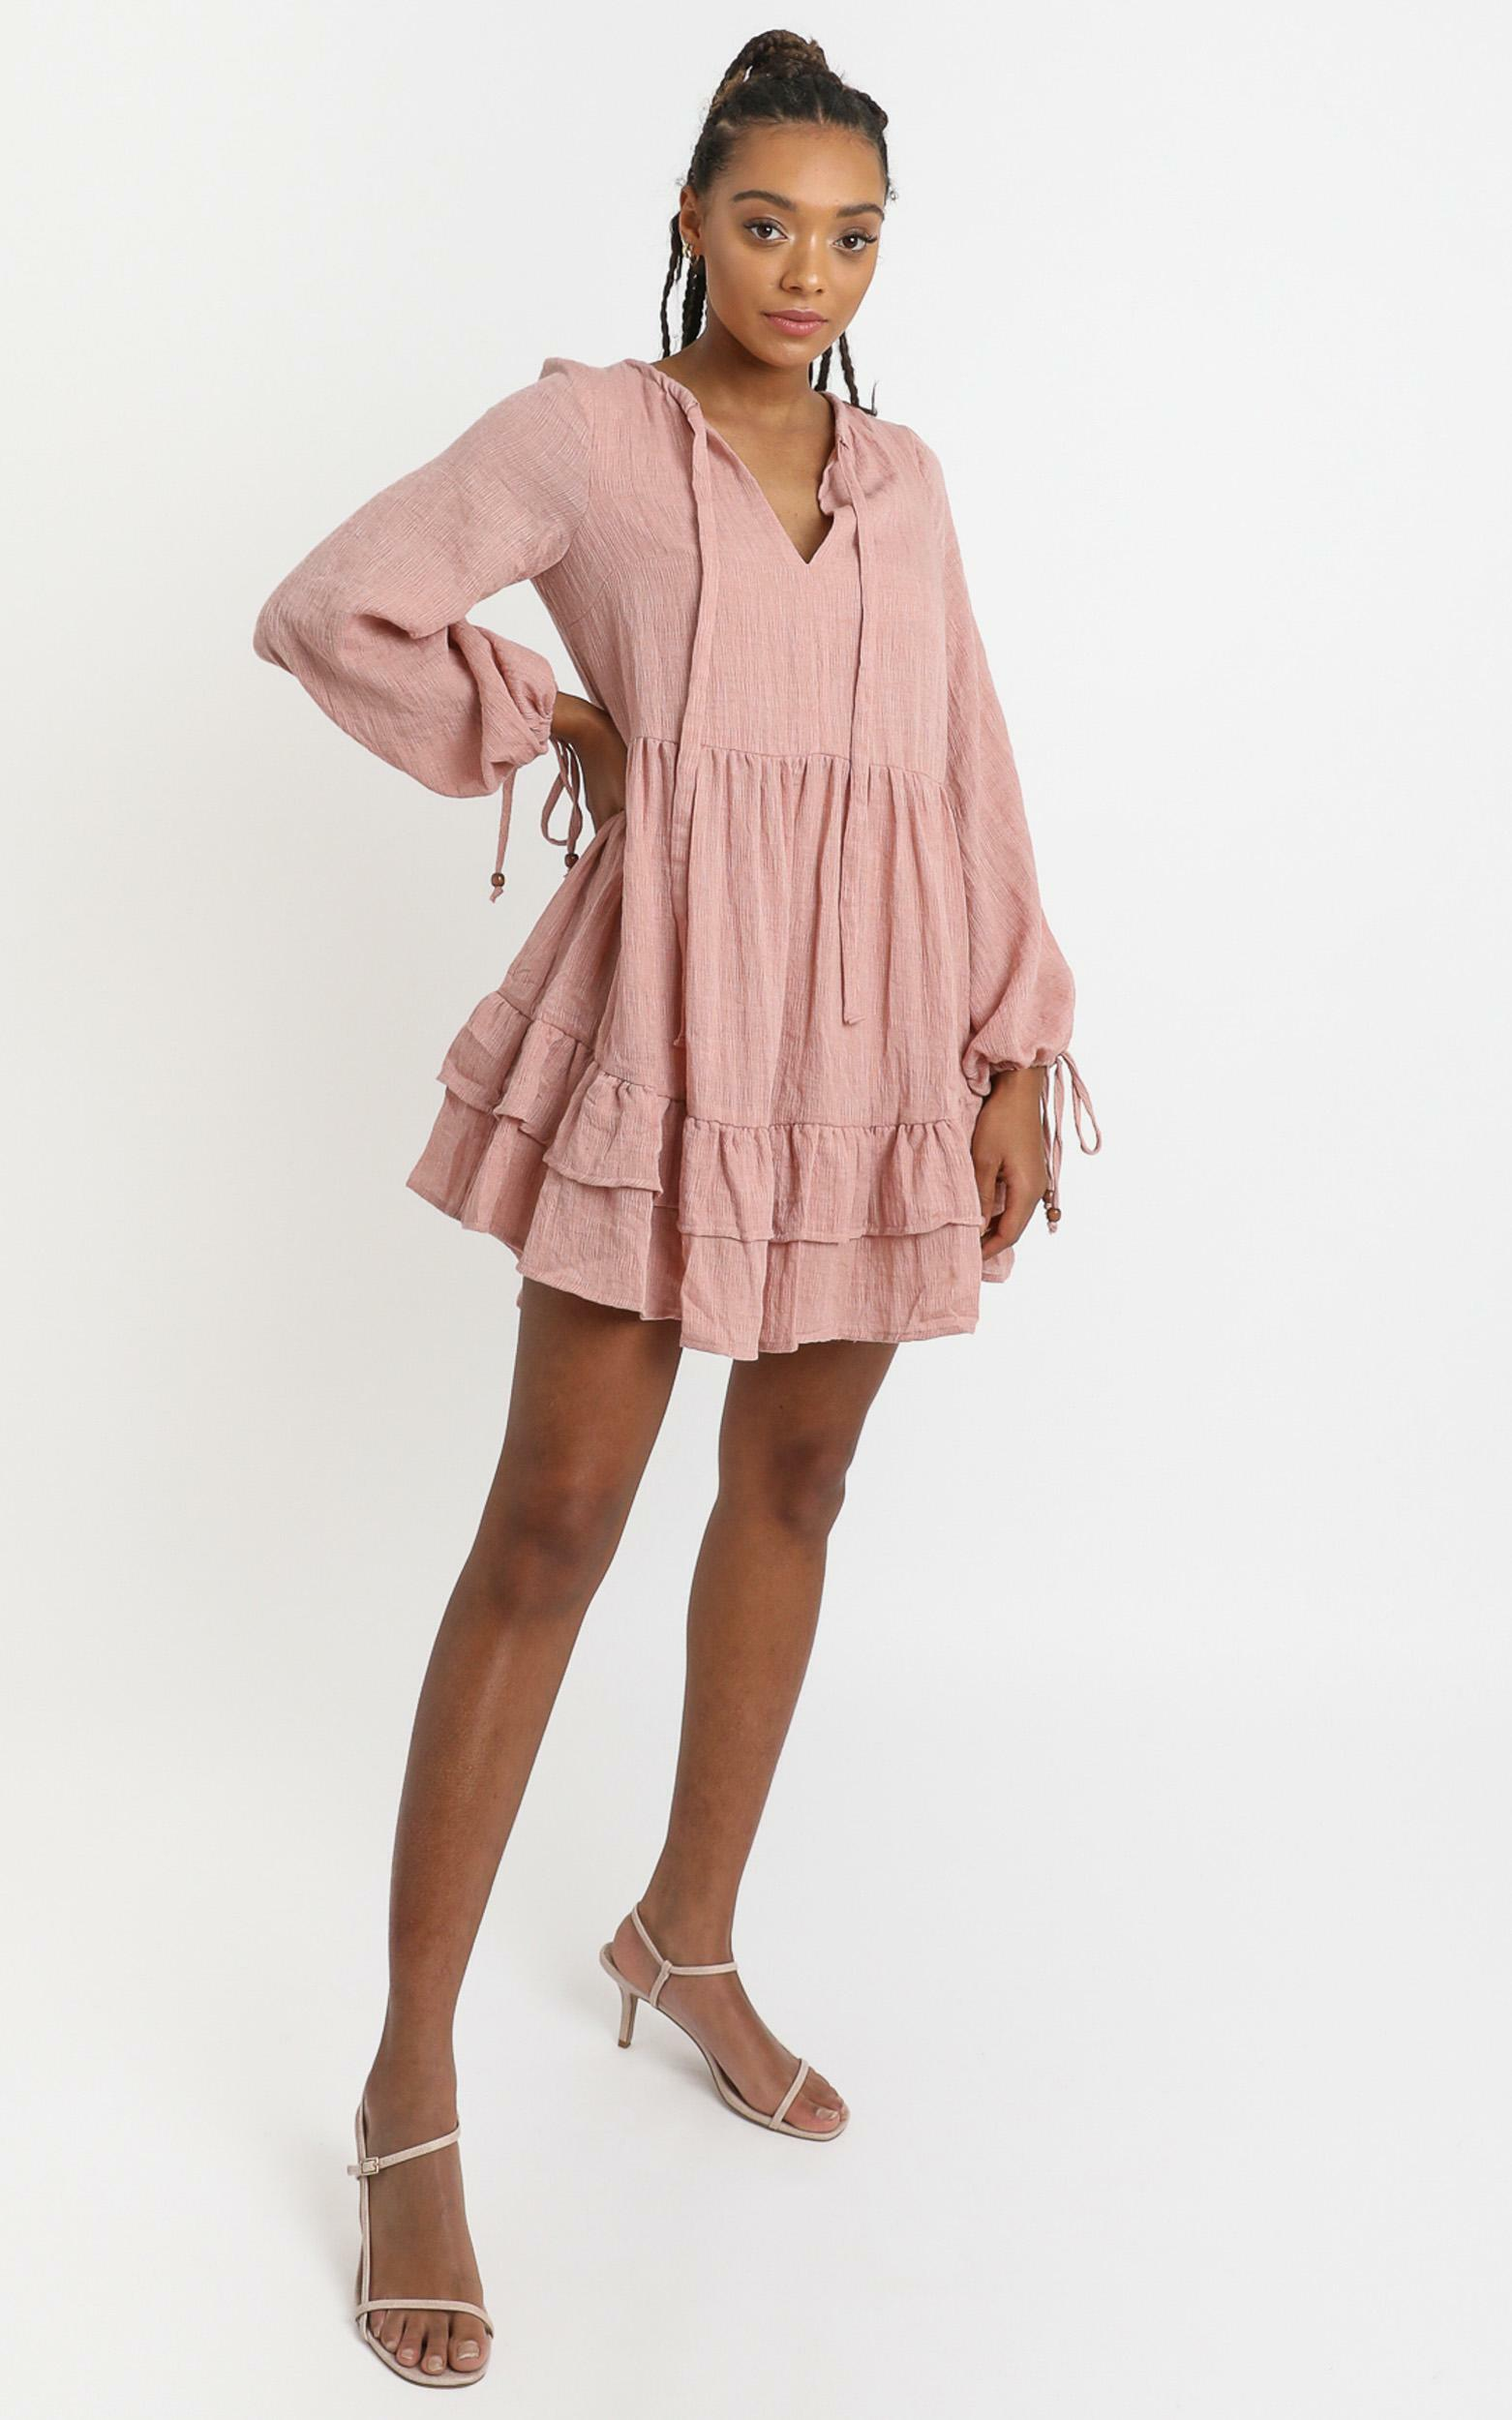 Carys Dress in Pink - 6 (XS), Pink, hi-res image number null